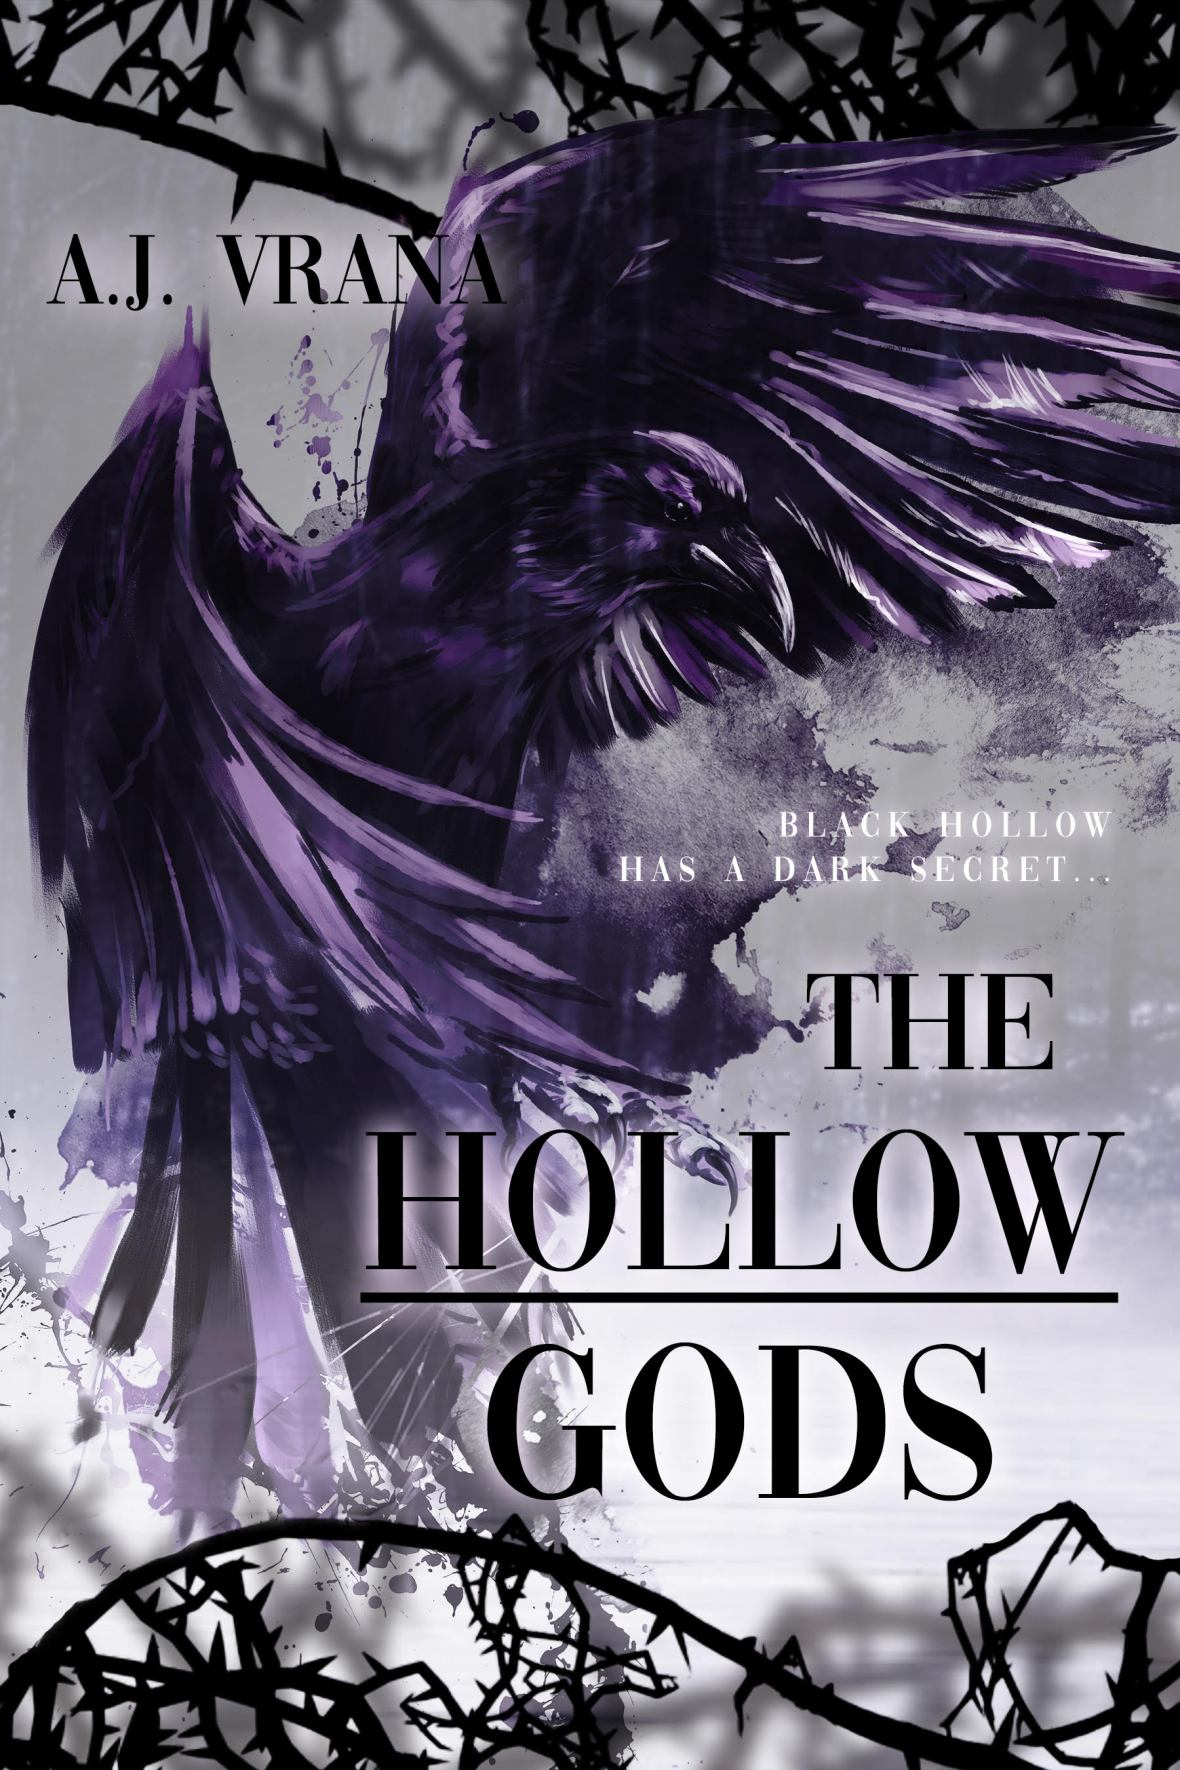 The Hollow Gods by A.J. Vrana